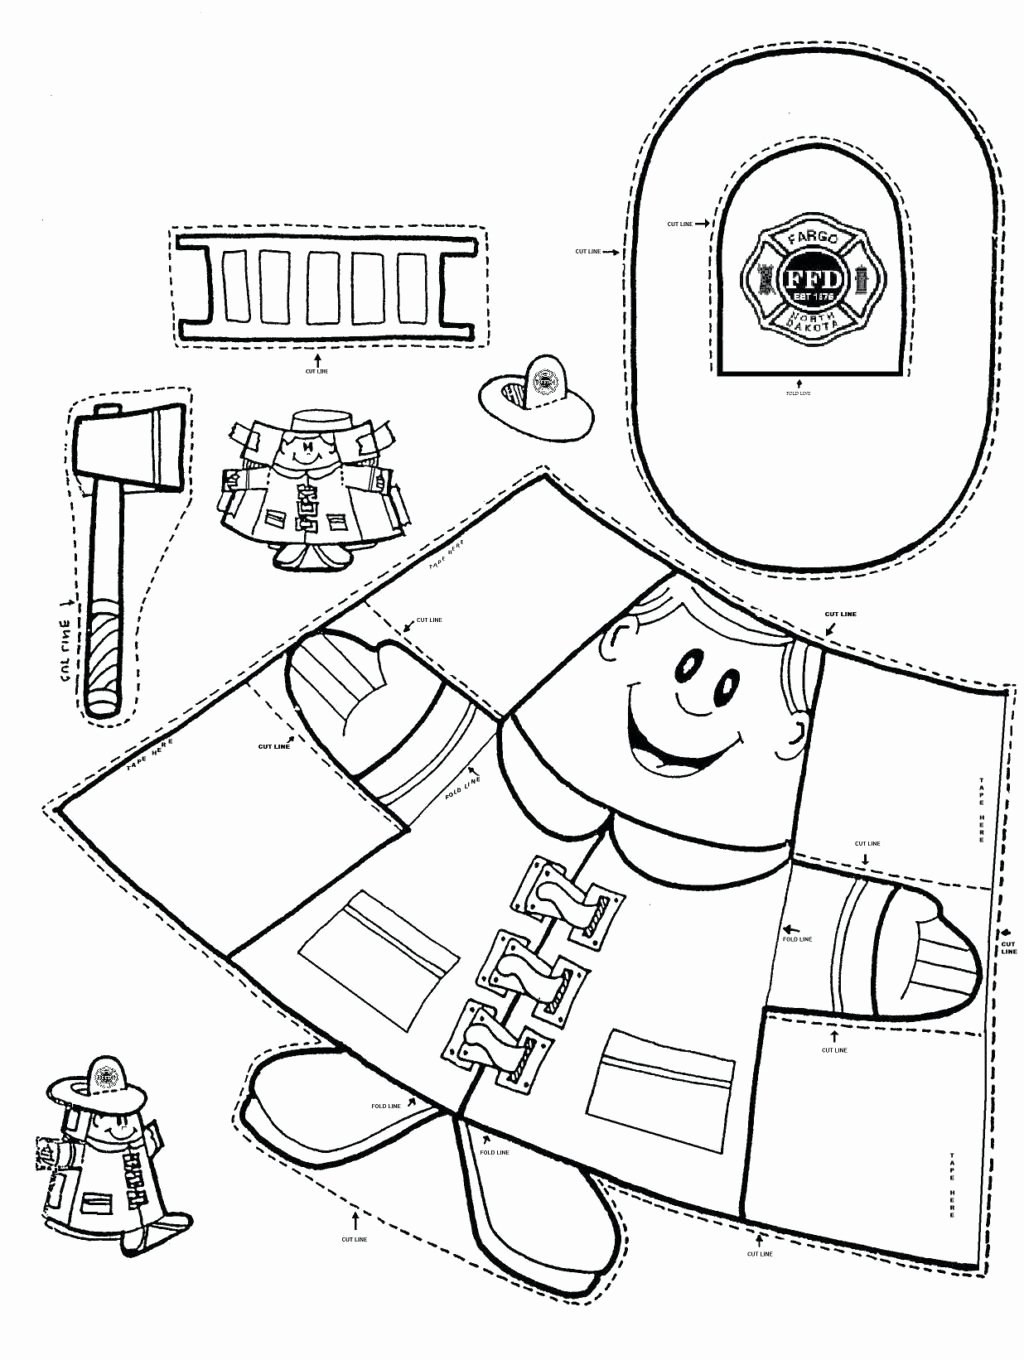 Post Office Worksheets for Preschoolers Fresh Worksheet Coloring Pages Fire Safety Coloringges Free Post